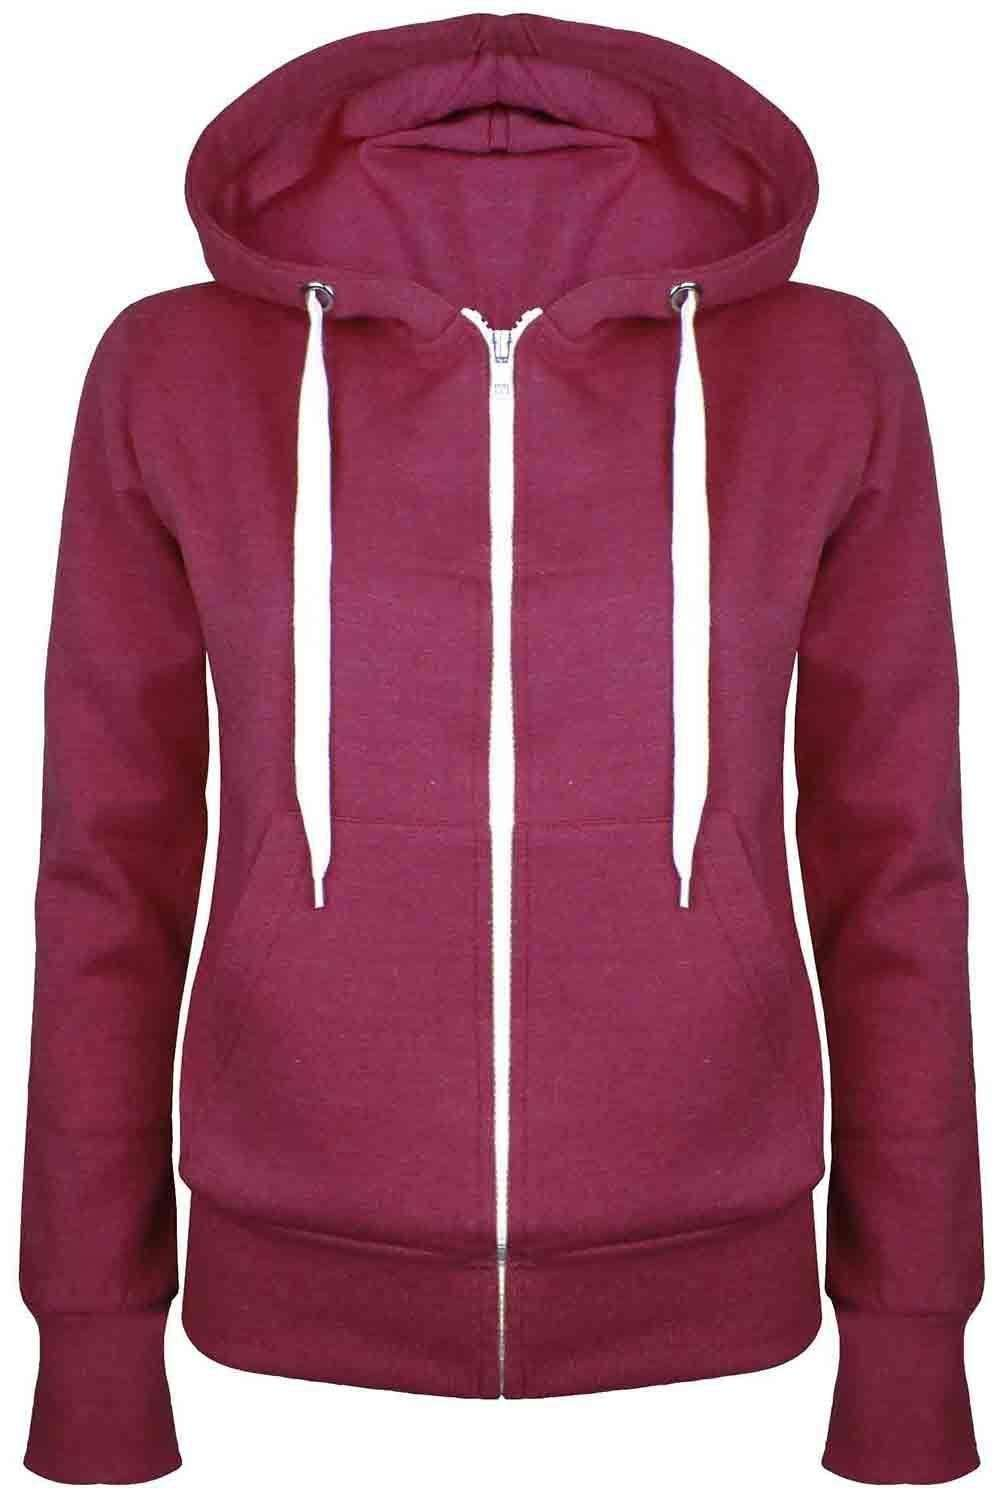 Zara Fleece Lined Zip Up Hoodie - bejealous-com